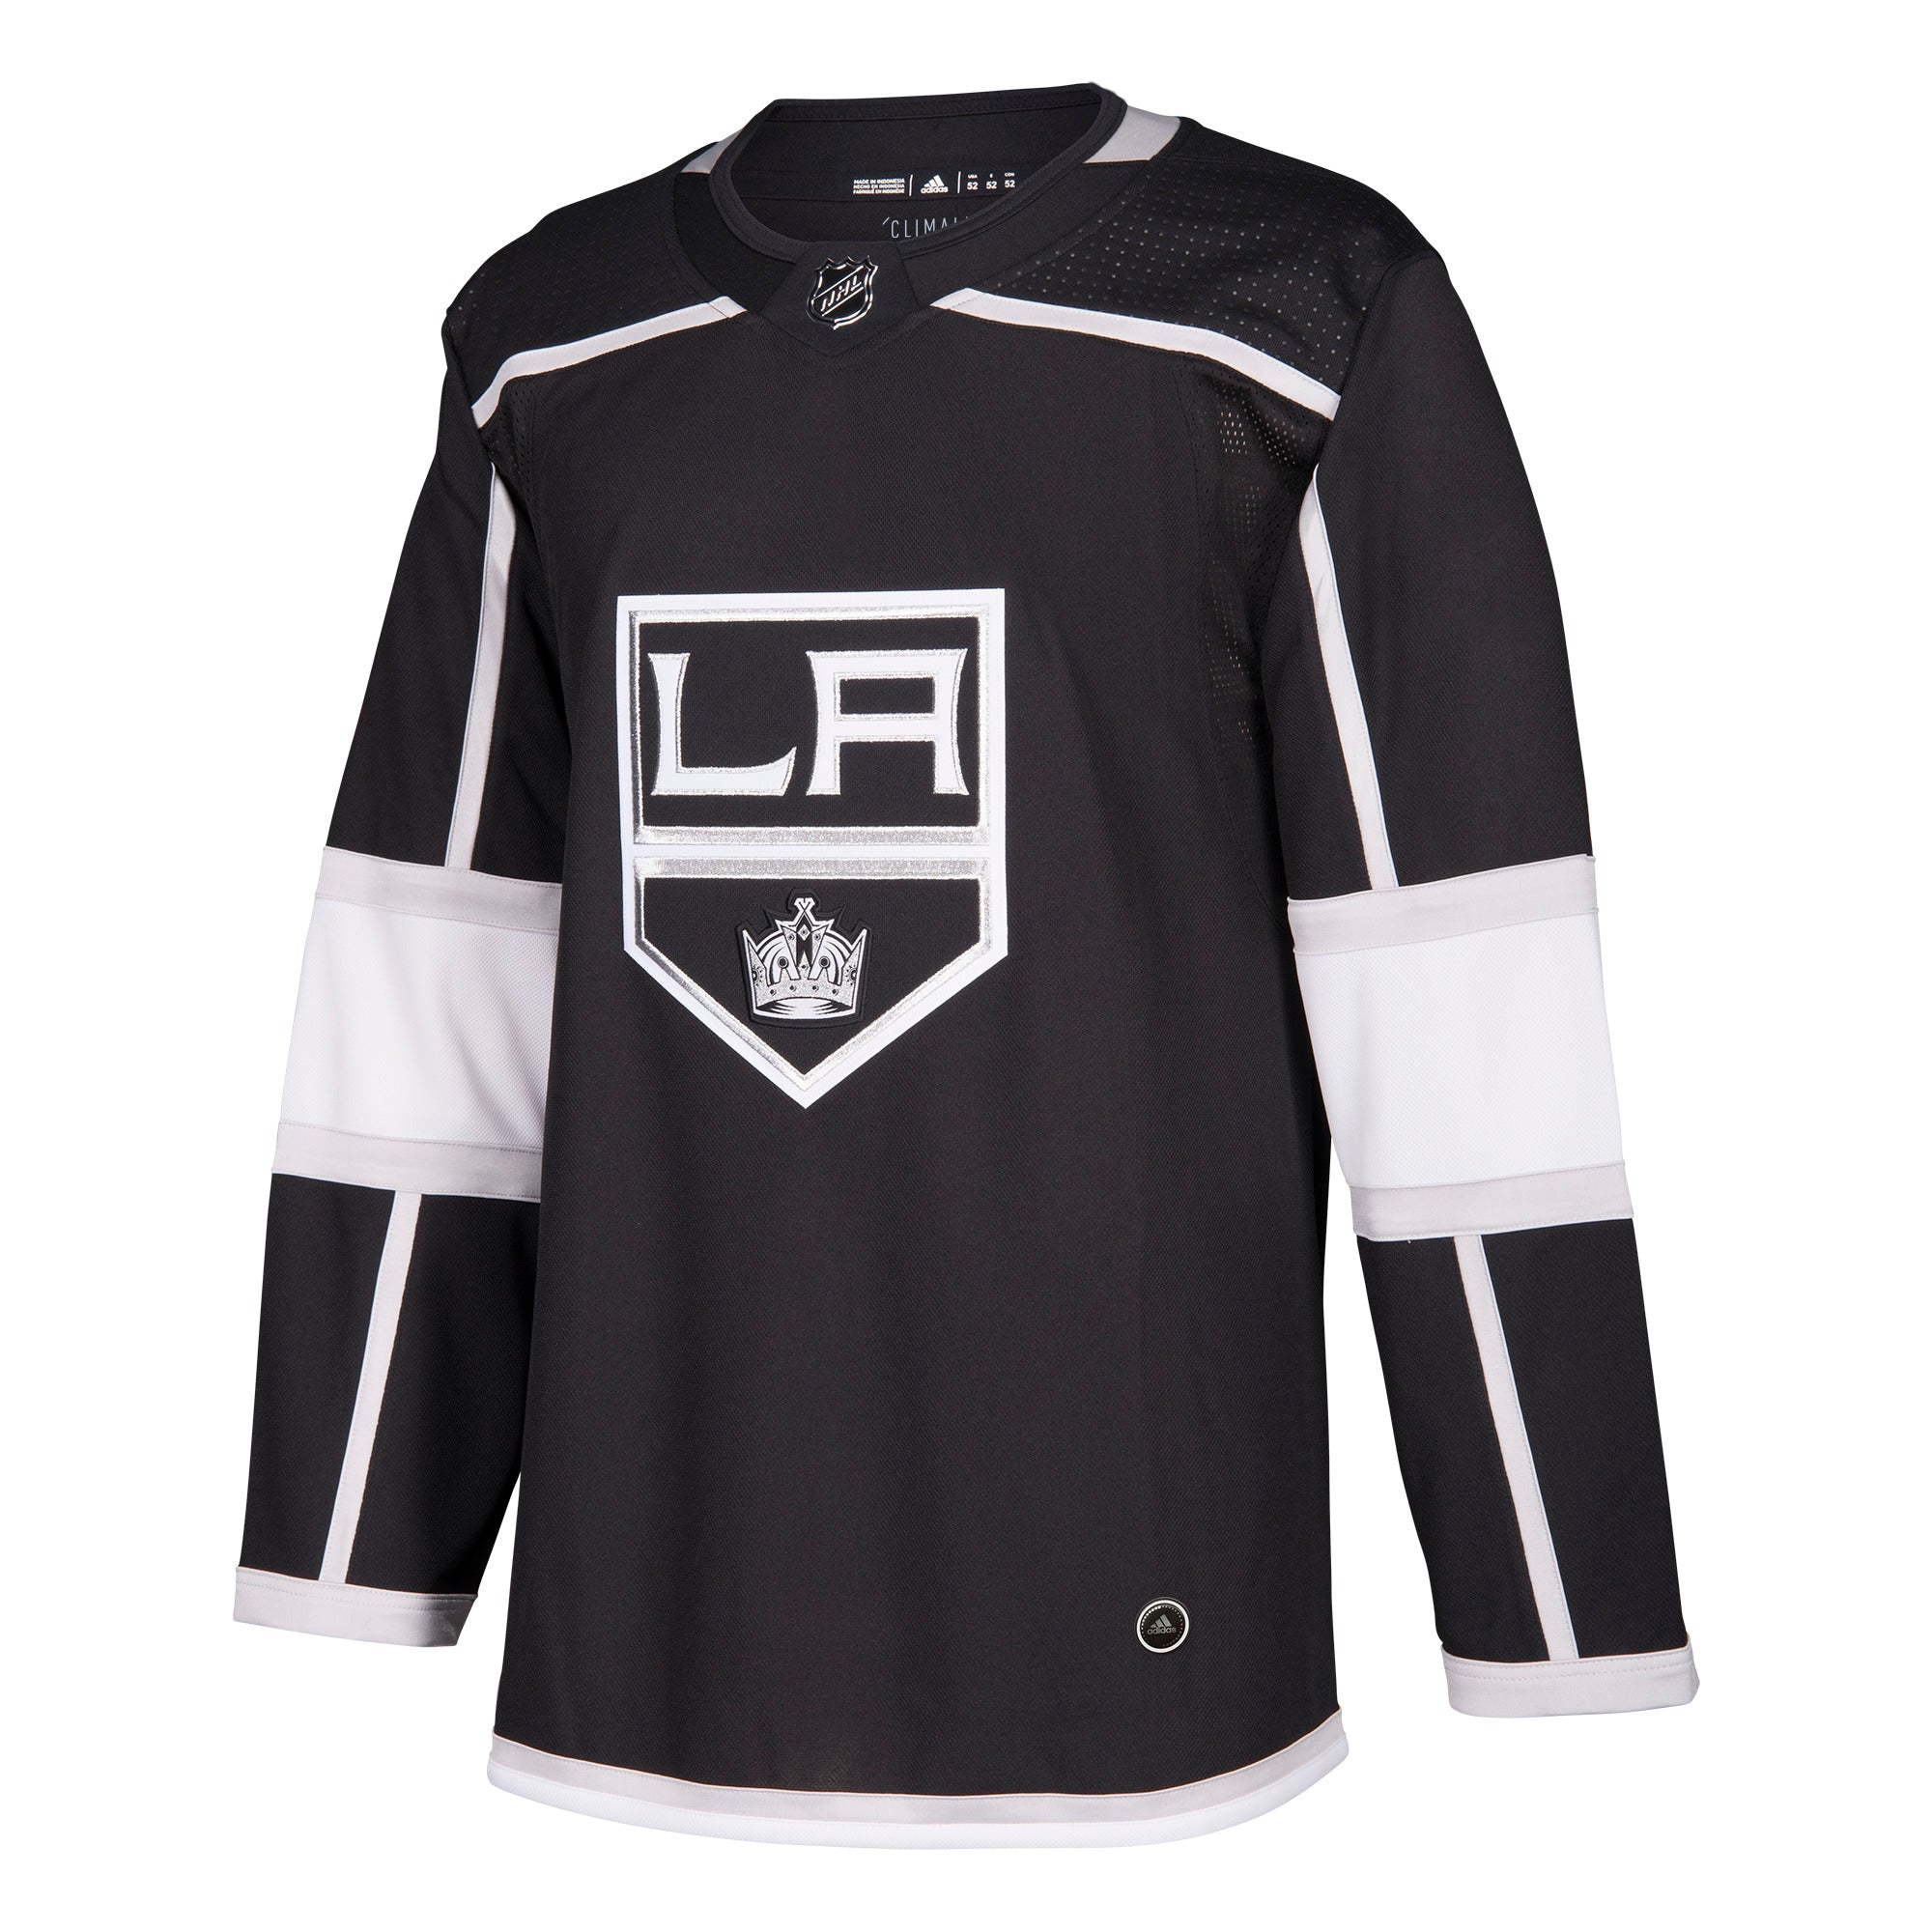 05d699a09 Los Angeles Kings HOME 252J Adidas NHL Authentic Pro Jersey - Hockey ...